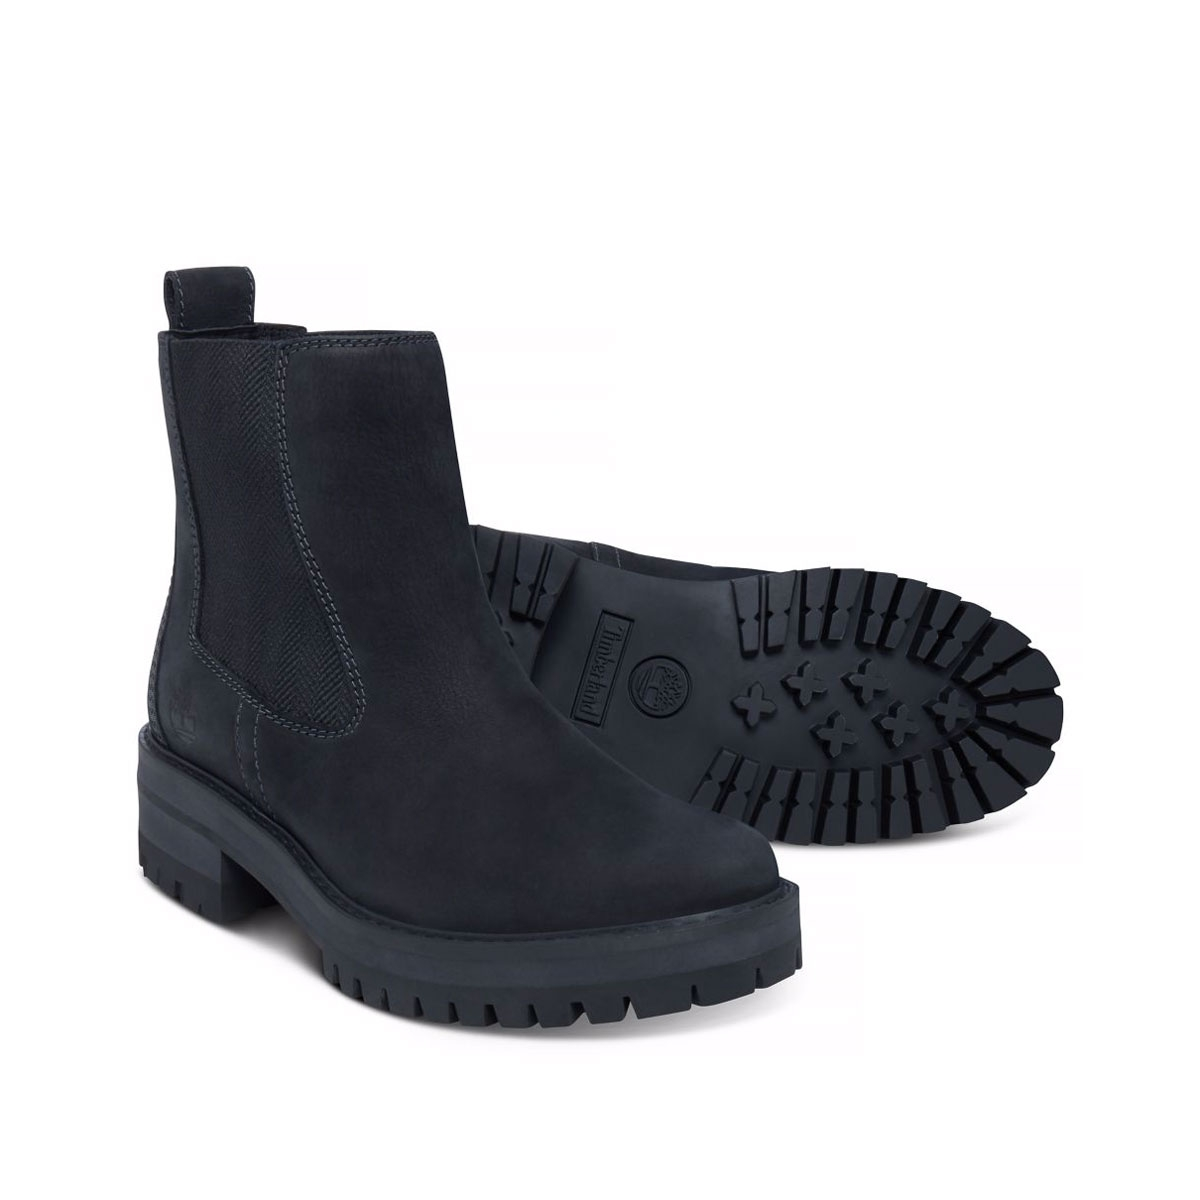 Image of Timberland Courmayeur Valley Chelsea Boots (Women s) - Black  Nubuck ... 7e5f5c985